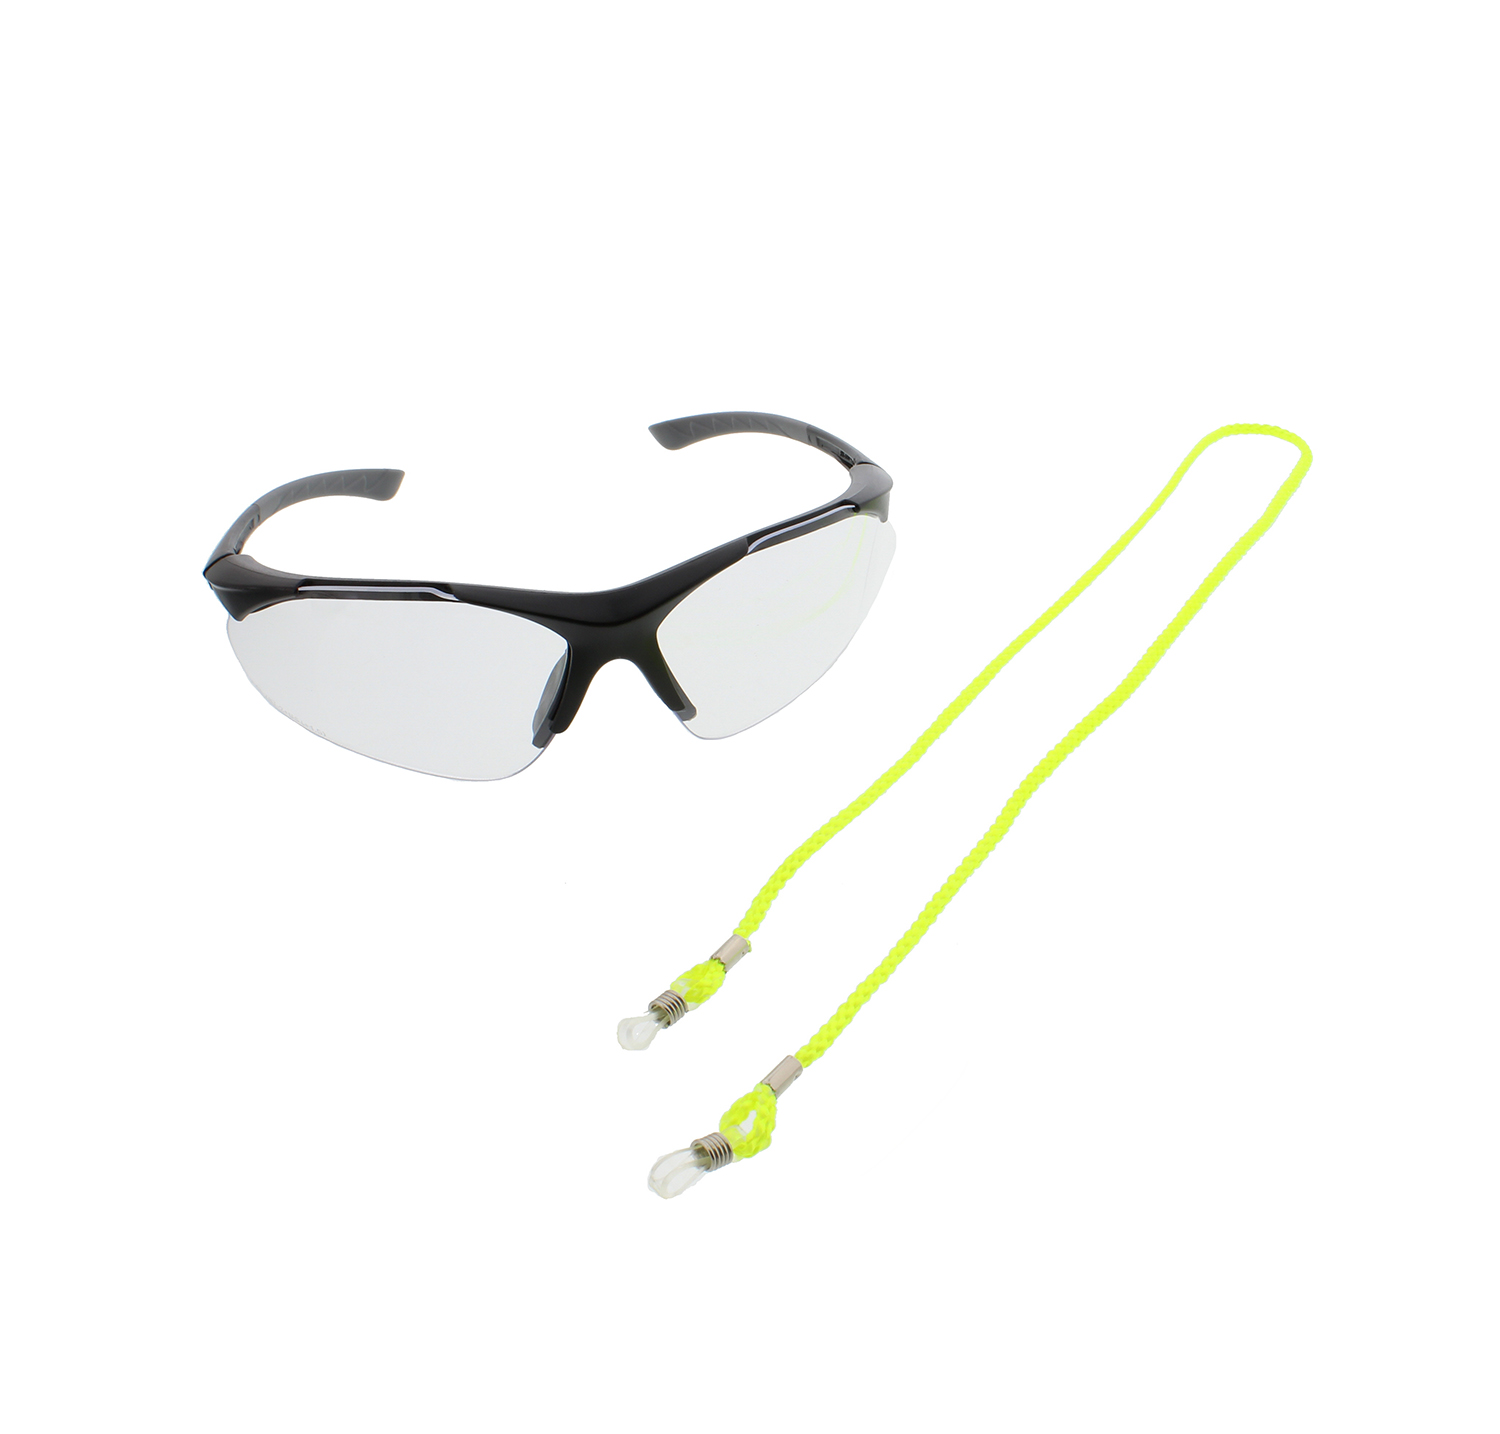 fb7545ade1a Details about Elvex RX-500C-1.5 Full Magnifier Diopter Safety Glasses w   SGC-10-HIVIZ Cord